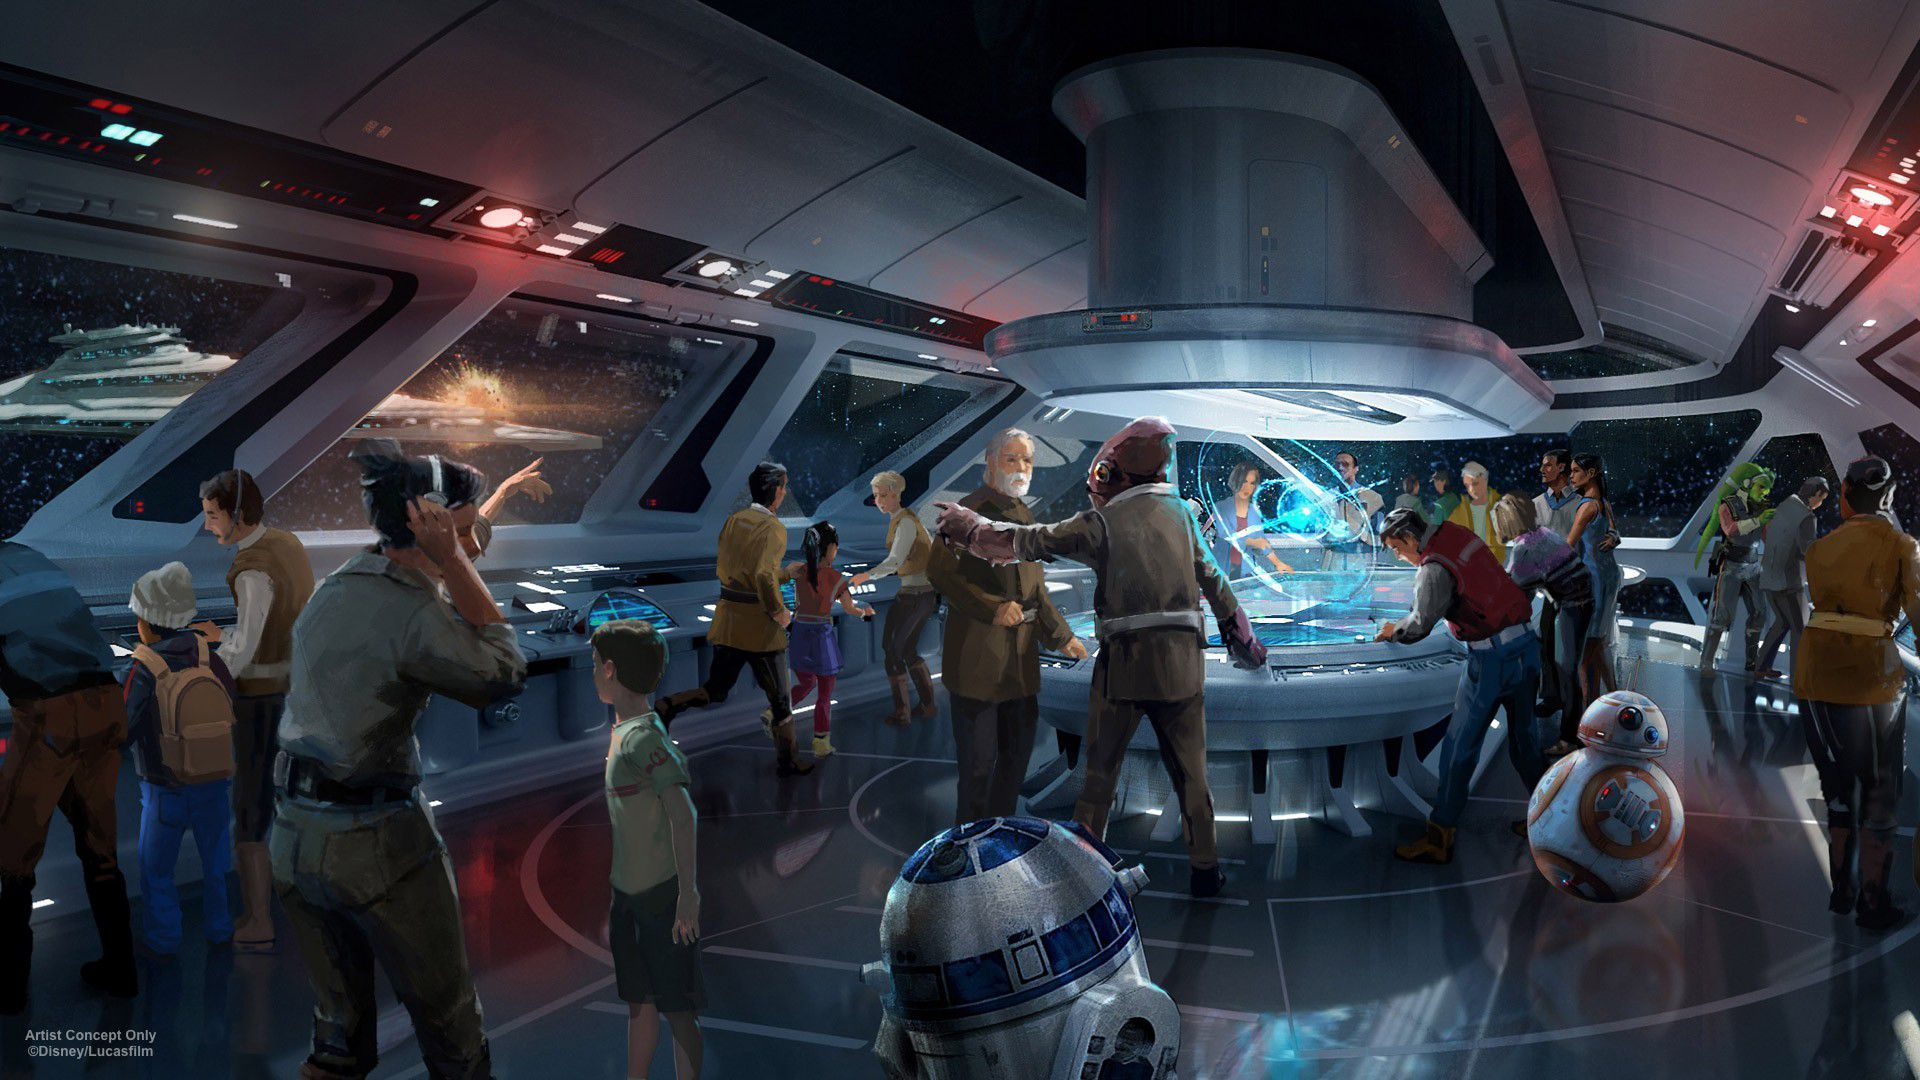 Star wars hotel disney 31